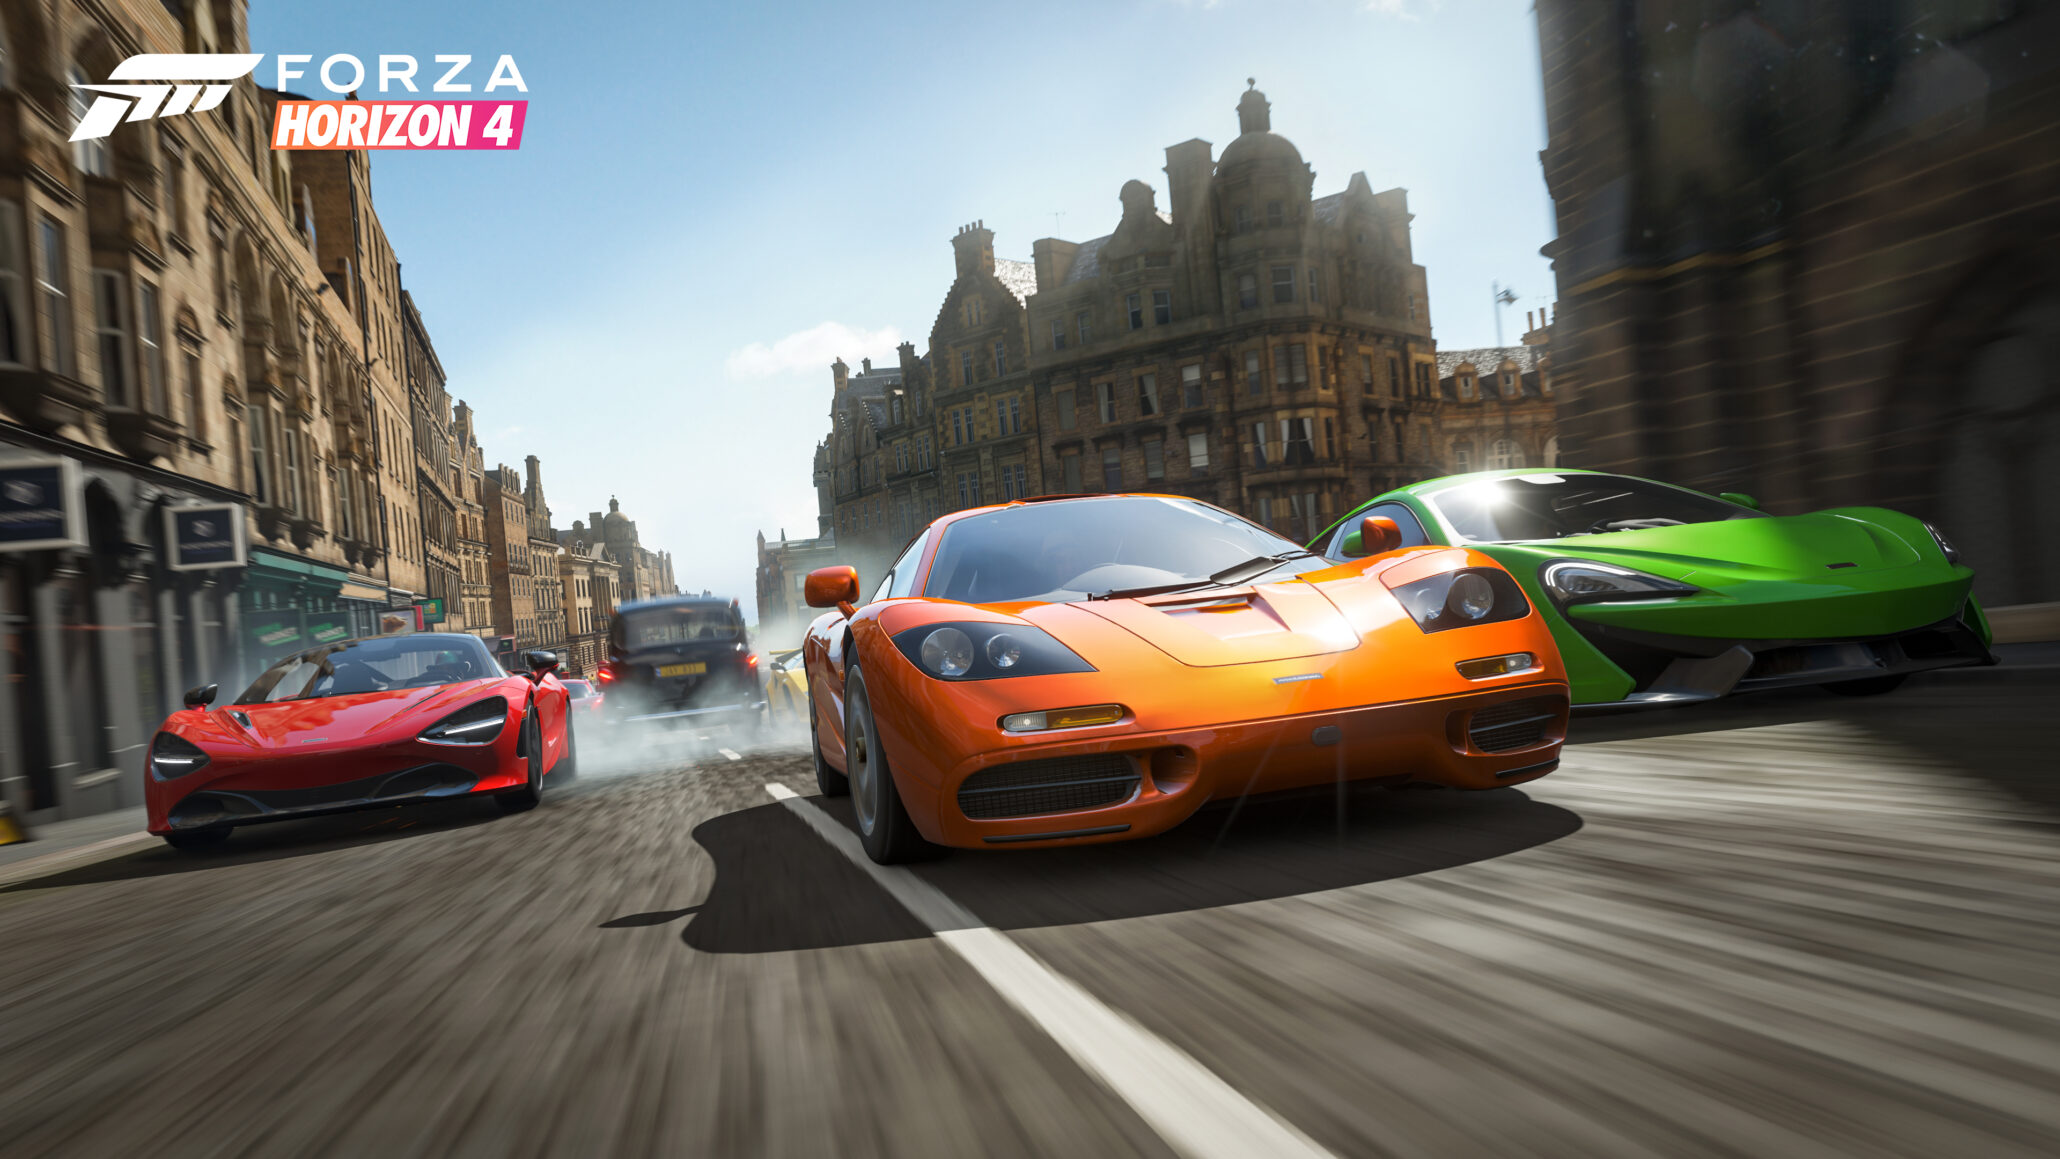 forza horizon 4 gets official pc system requirements. Black Bedroom Furniture Sets. Home Design Ideas